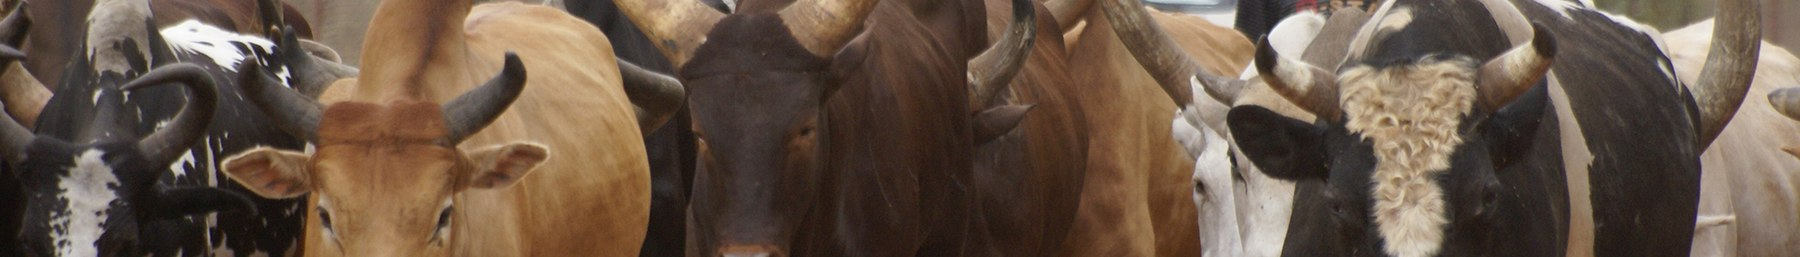 Juba (South Sudan) banner Cattle of the Dinka people.jpg